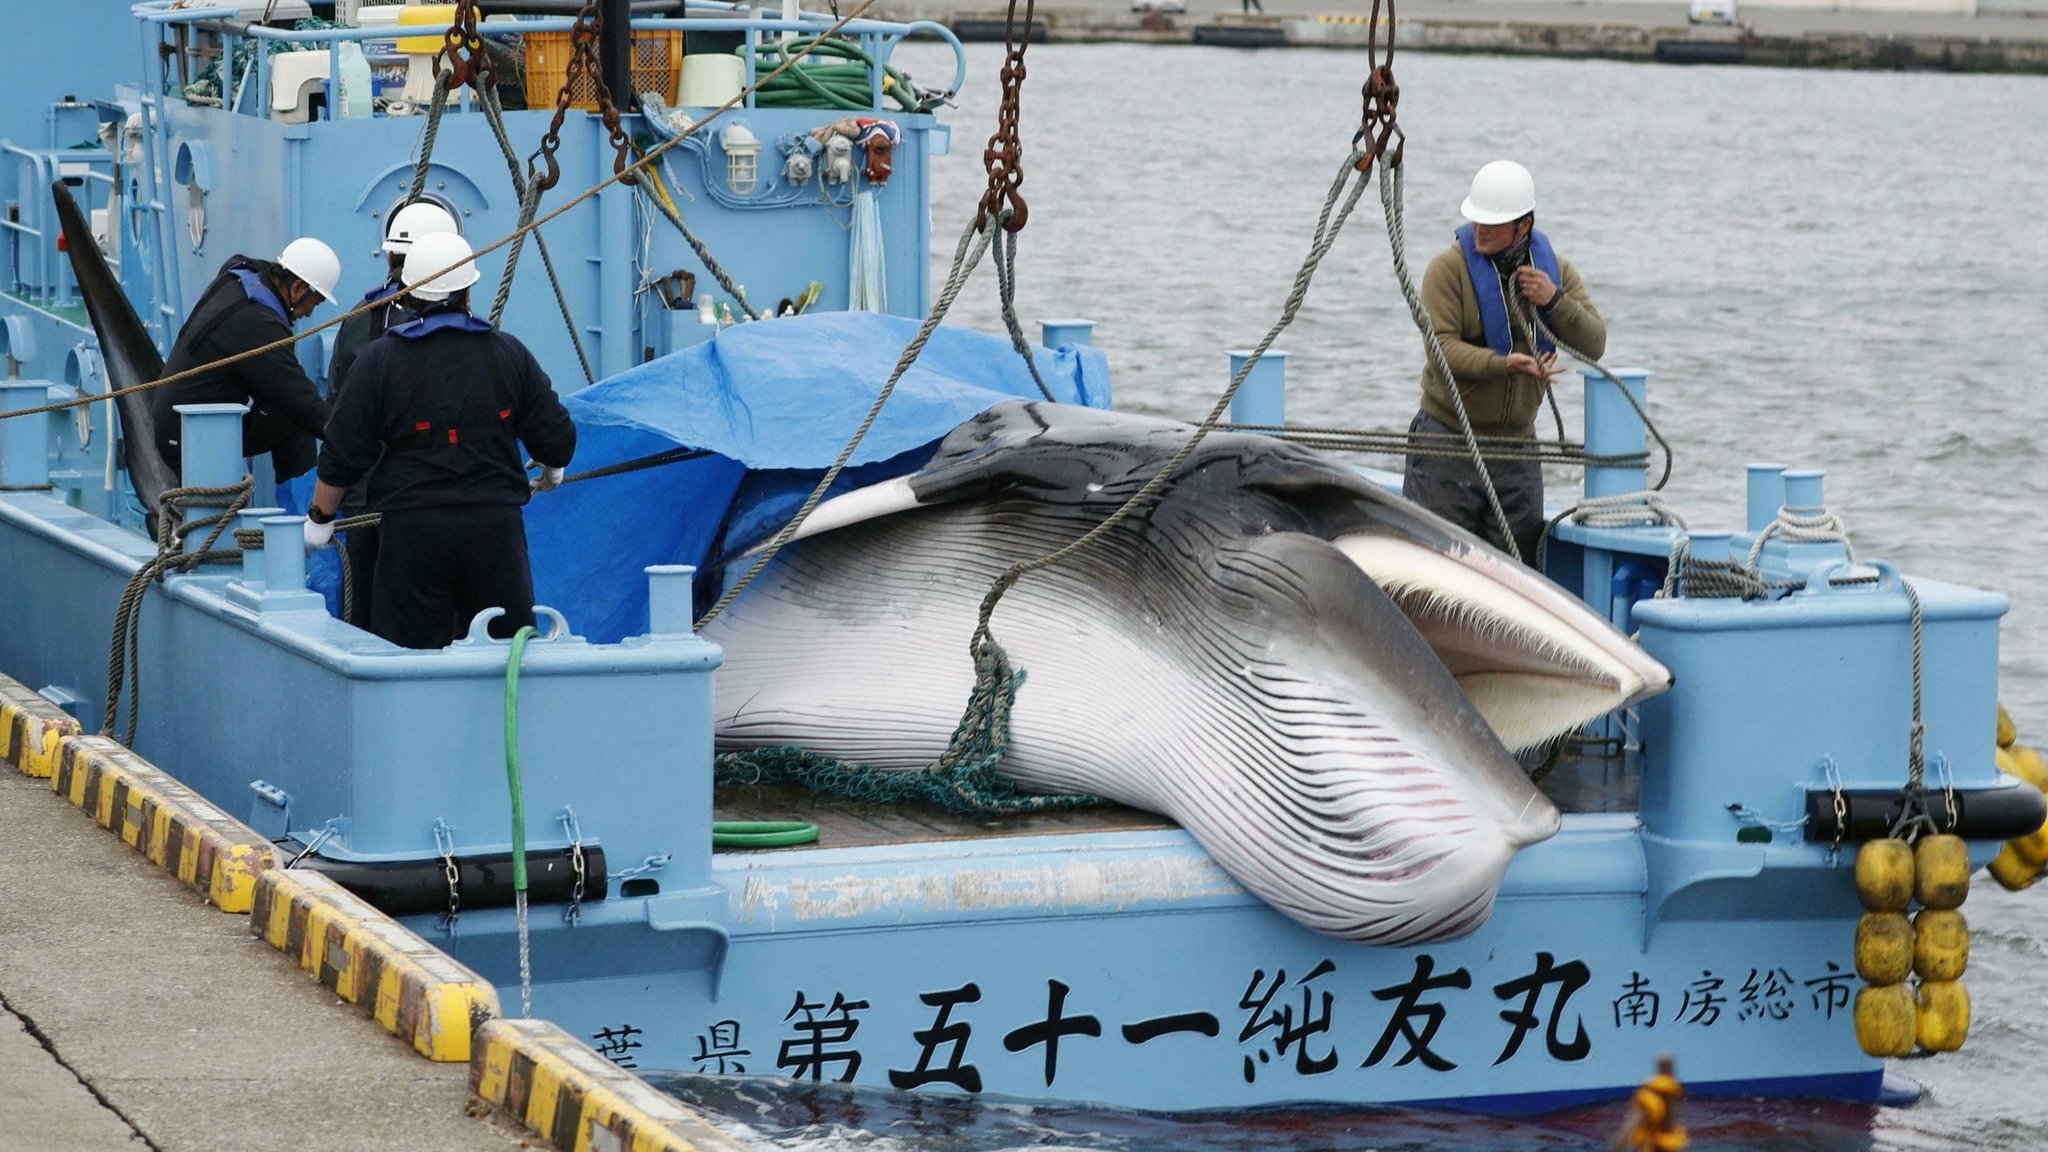 Petition: Ask Japan to Stop Whale Massacres!